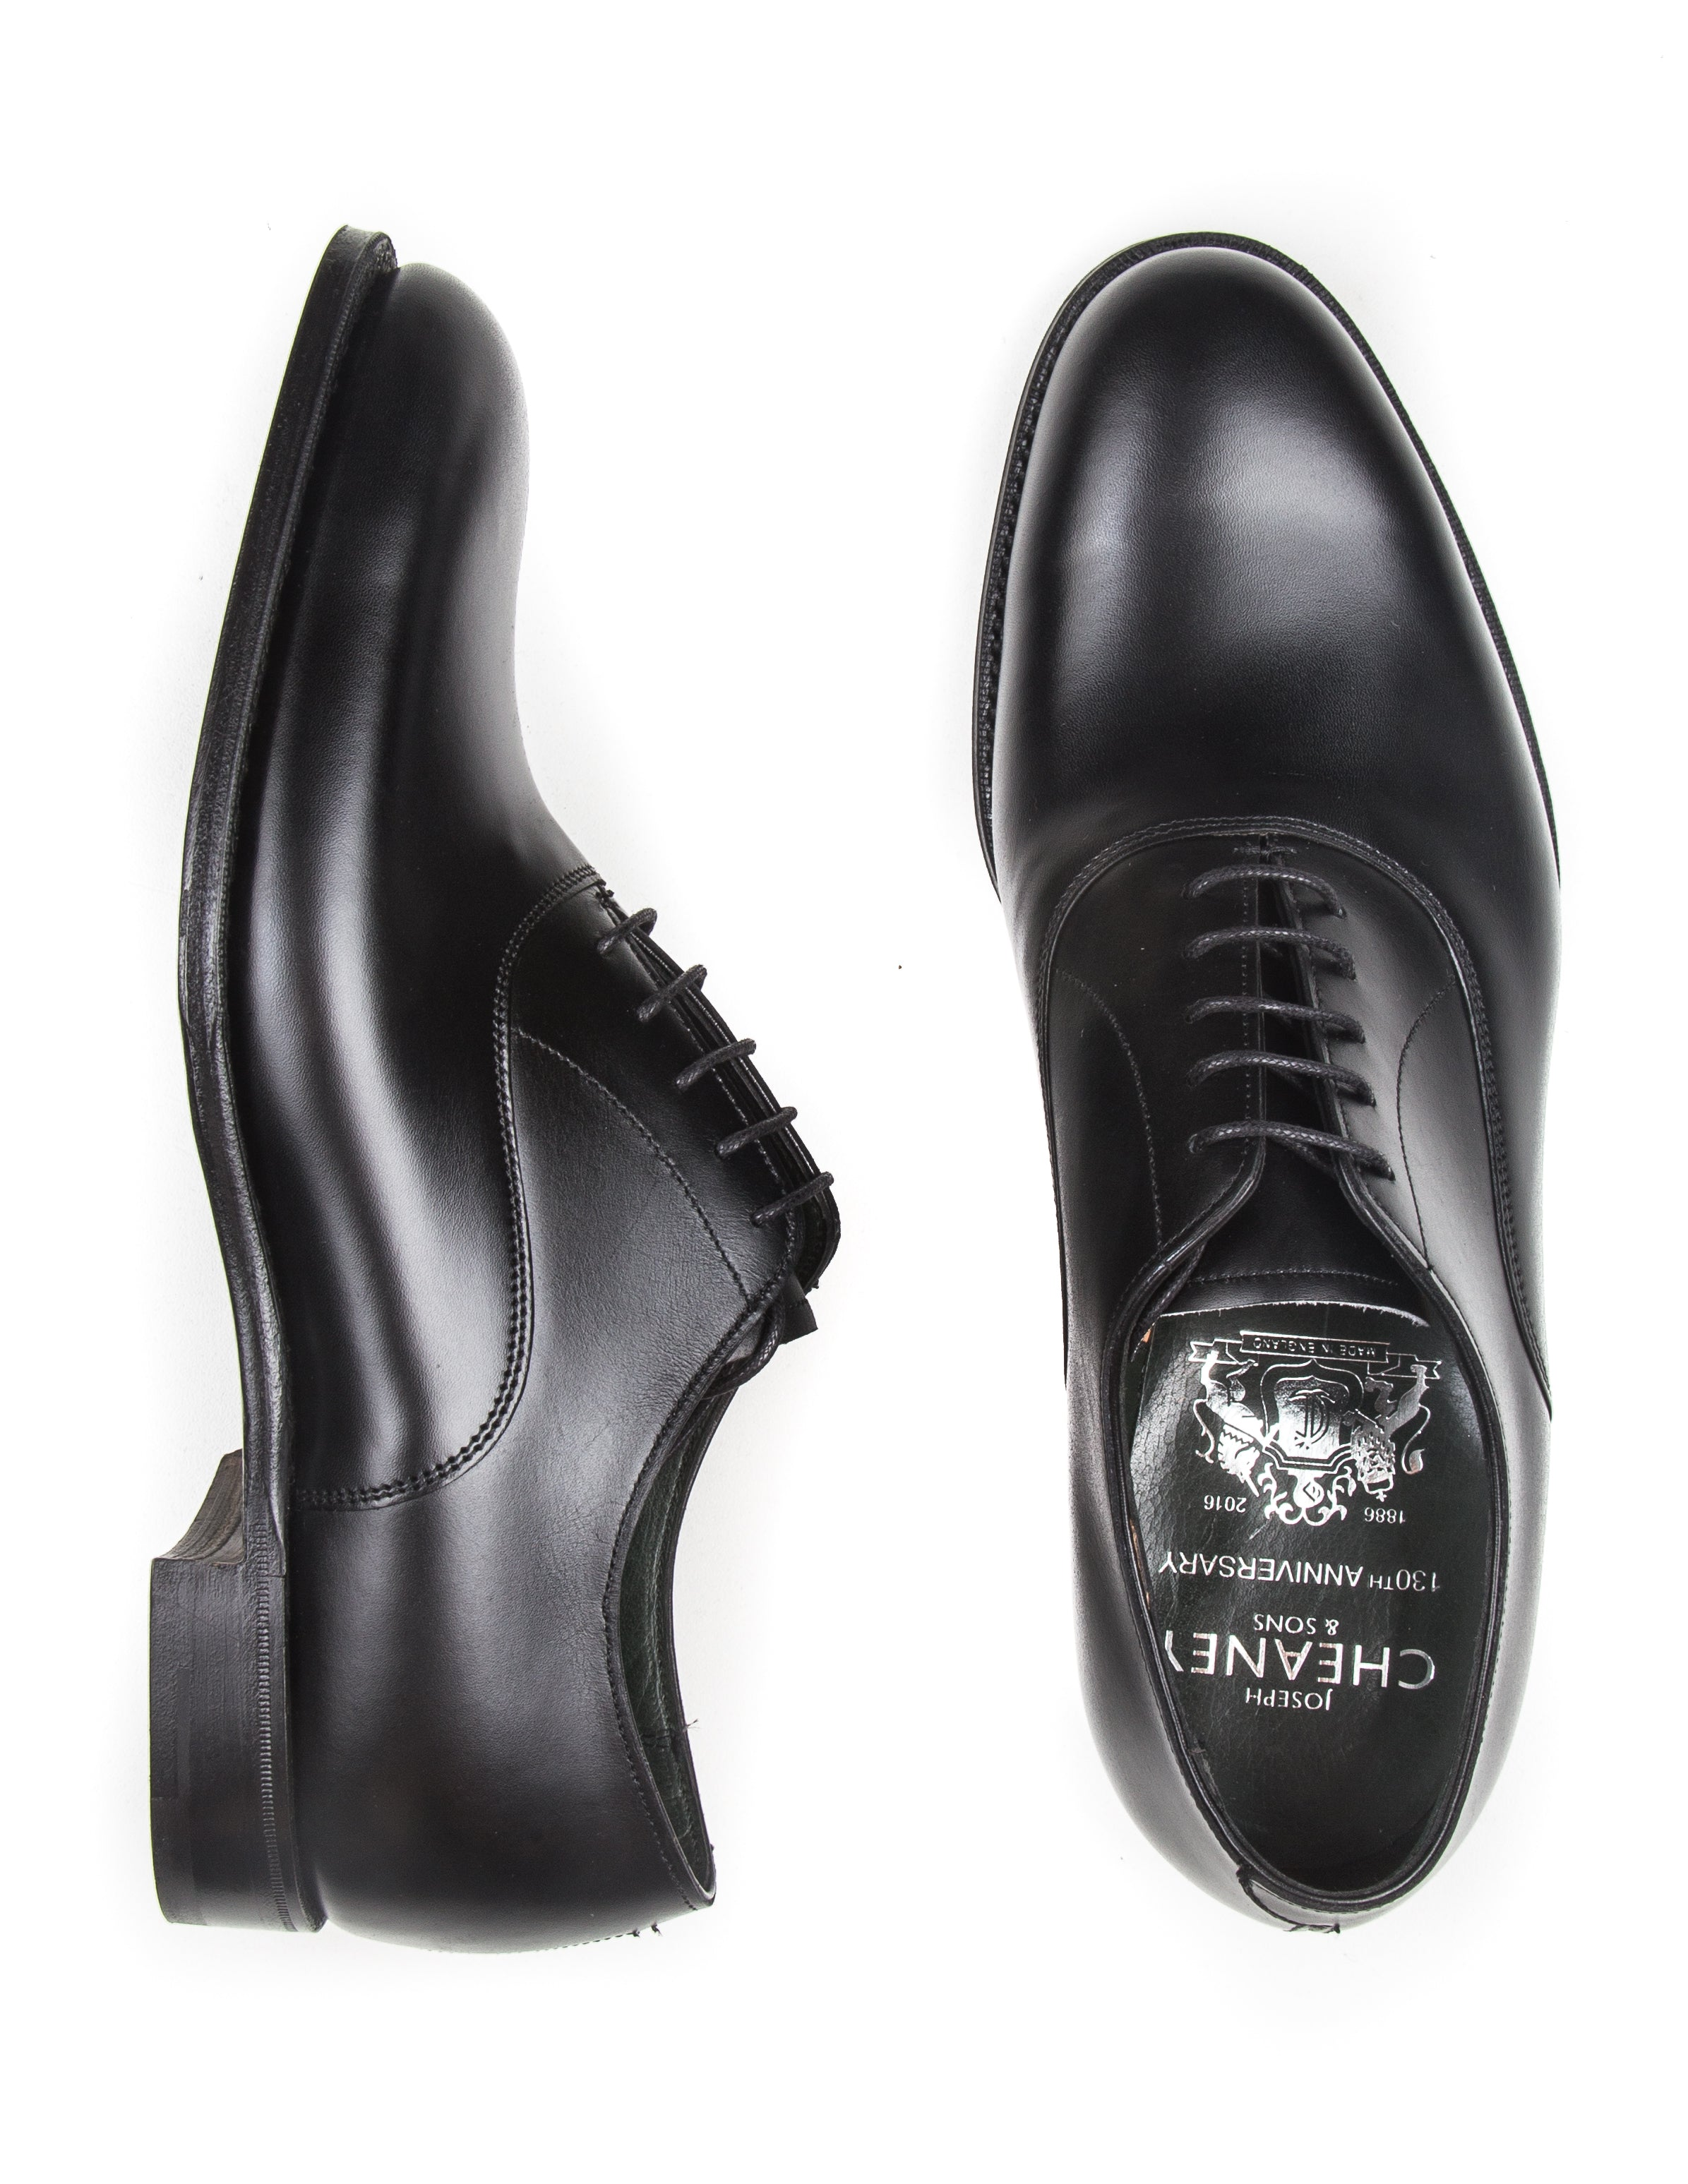 Welland Oxford Shoes in Black Calf Leather